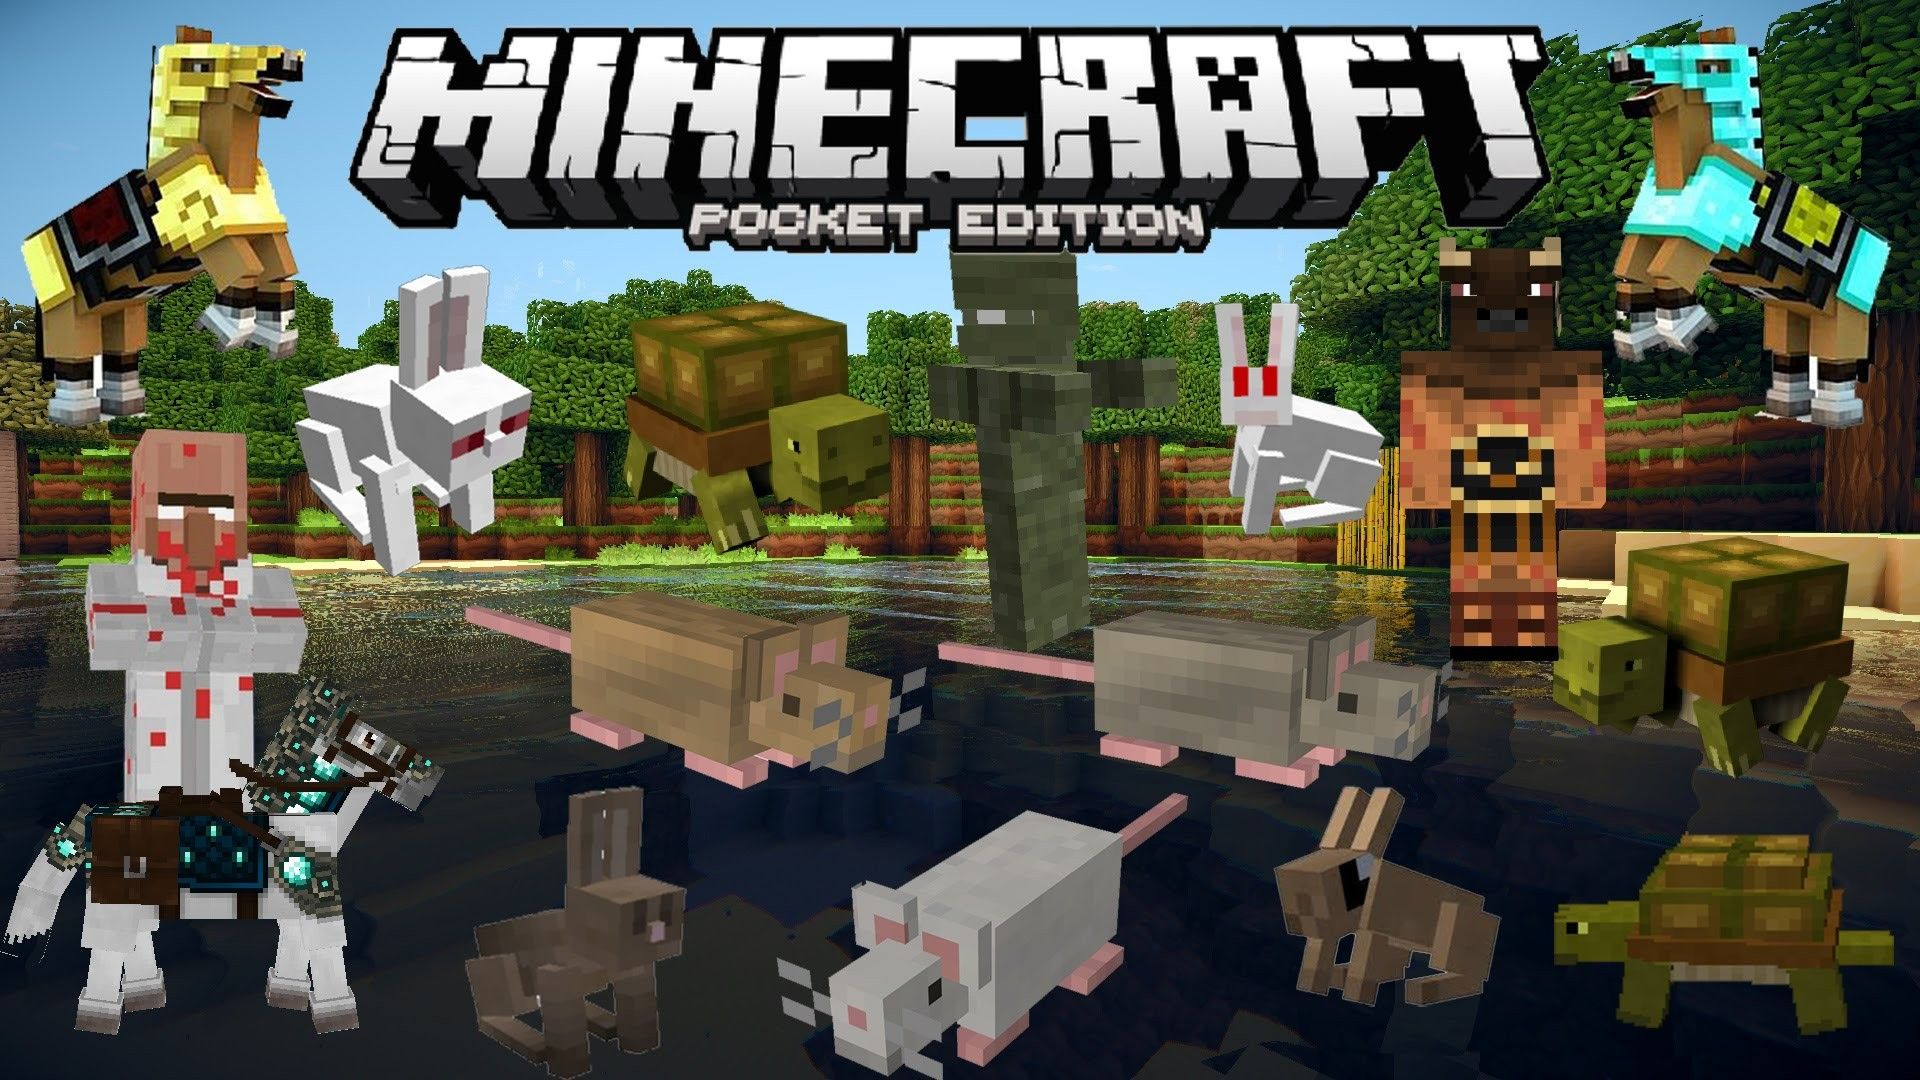 juegos de minecraft pocket edition para pc gratis